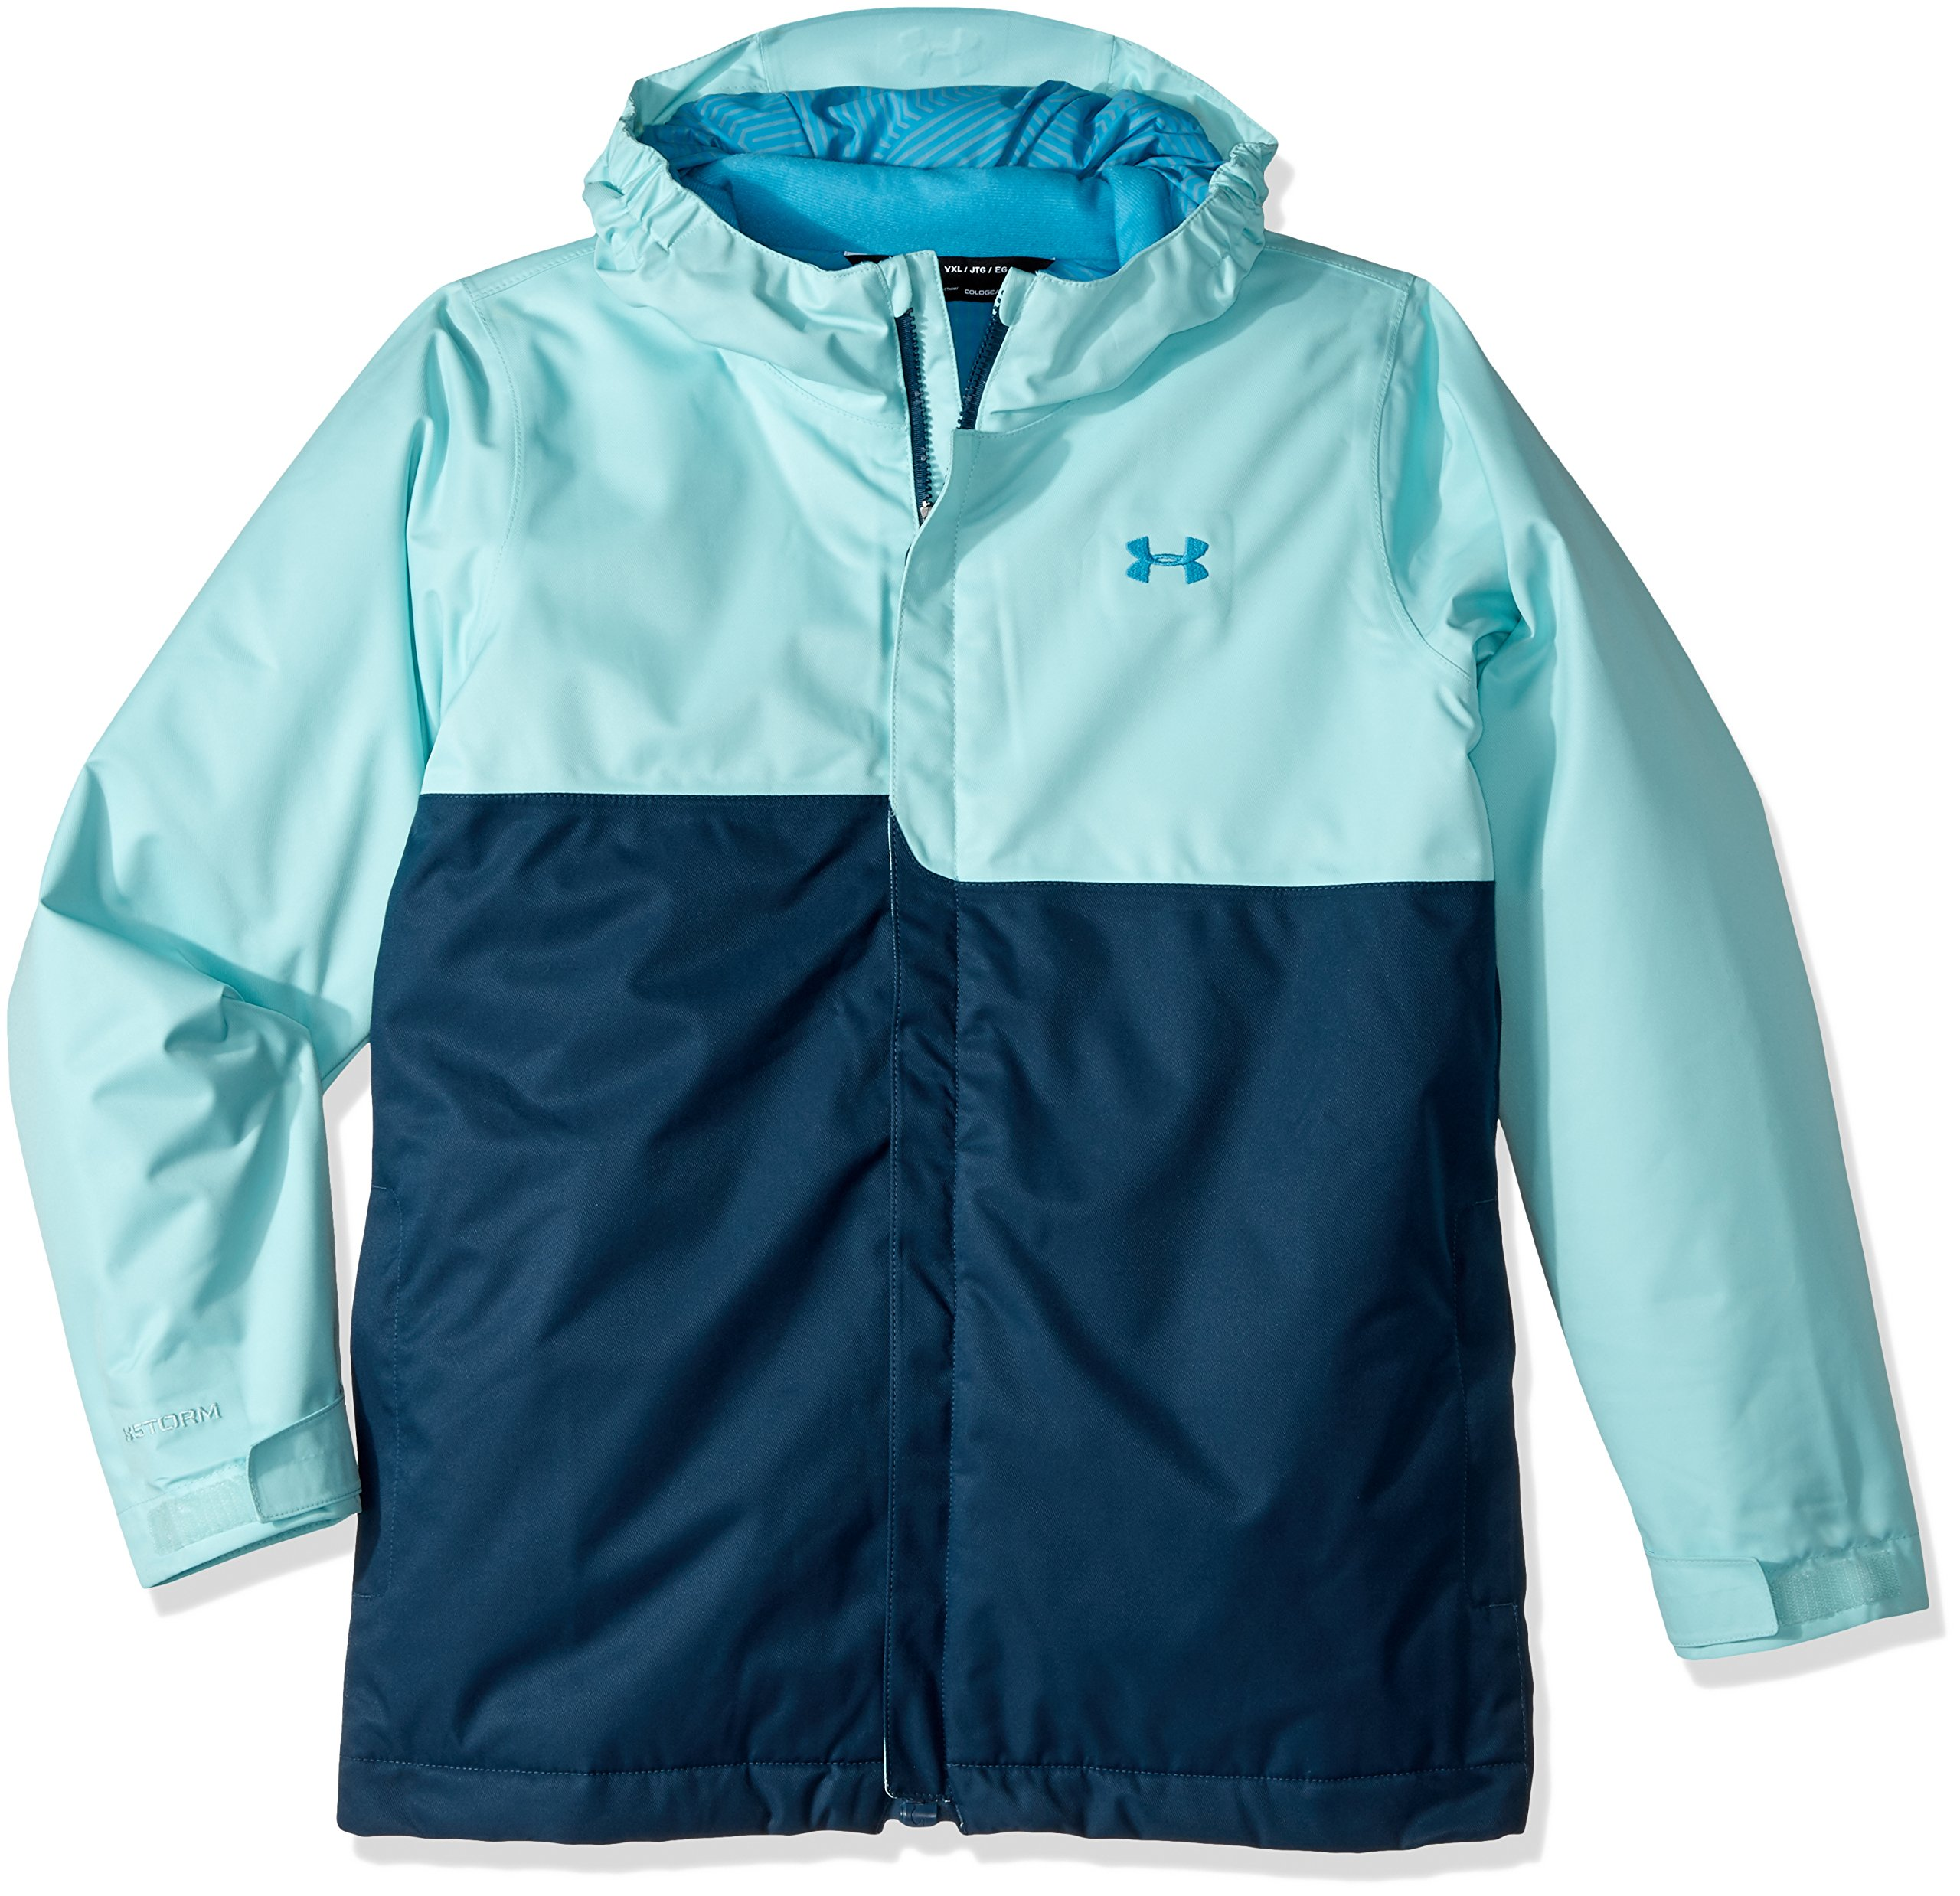 Under Armour Outerwear Girl's Under Armour Girls' Pp Rideable Jacket, Blue Infinity/Blue Shift, Youth Medium by Under Armour